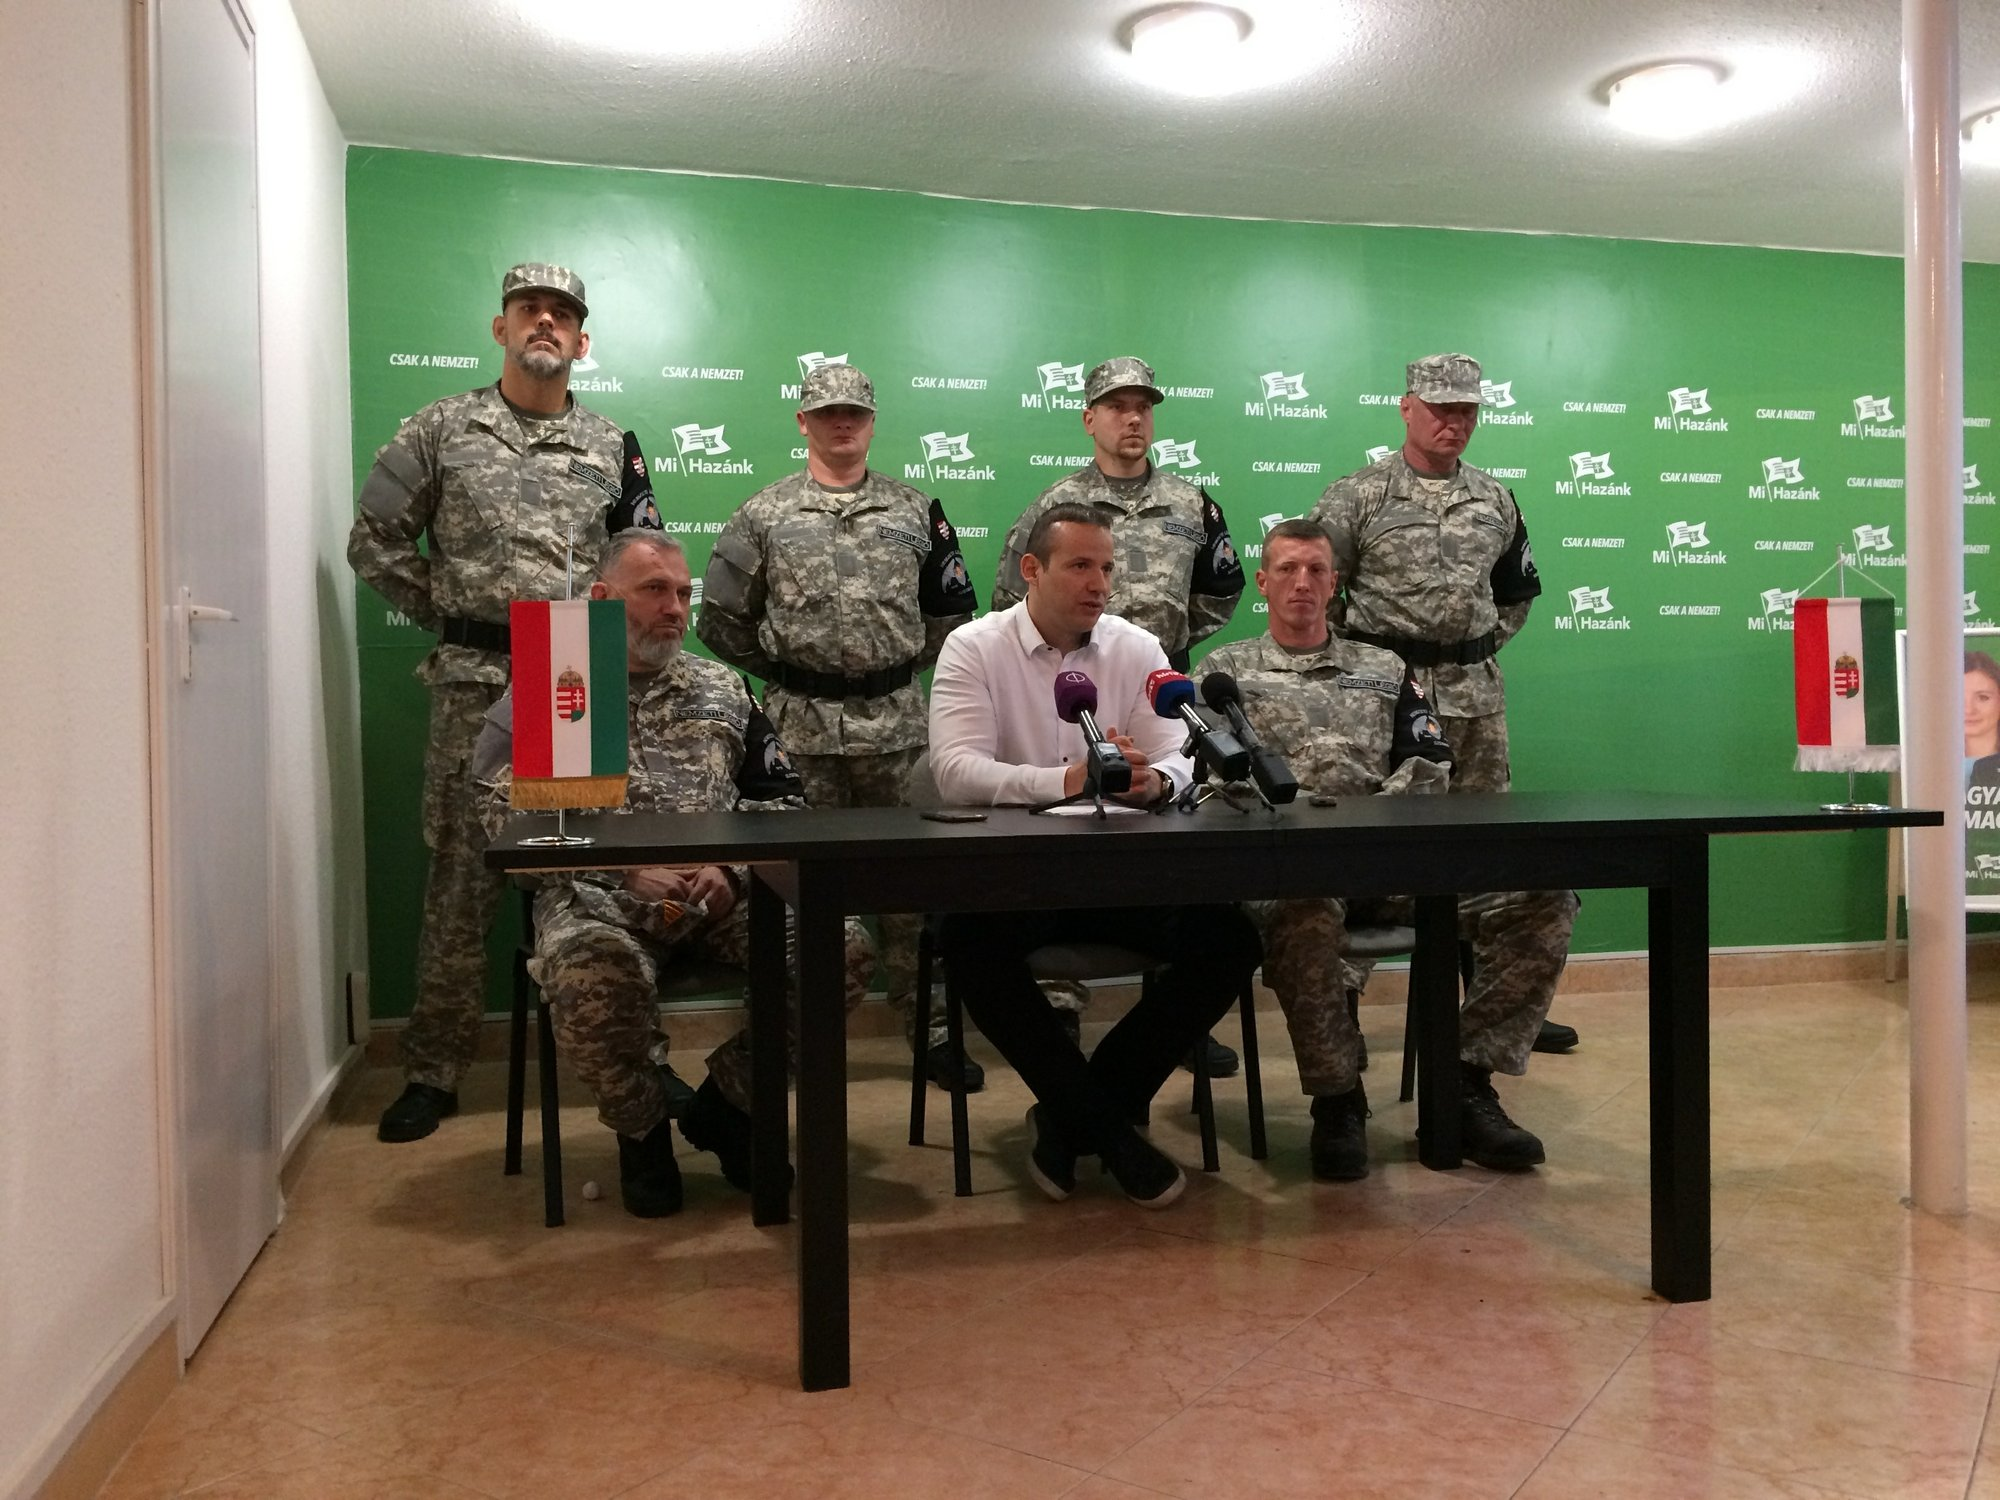 Hungary far-right party forms uniformed 'self-defense' group